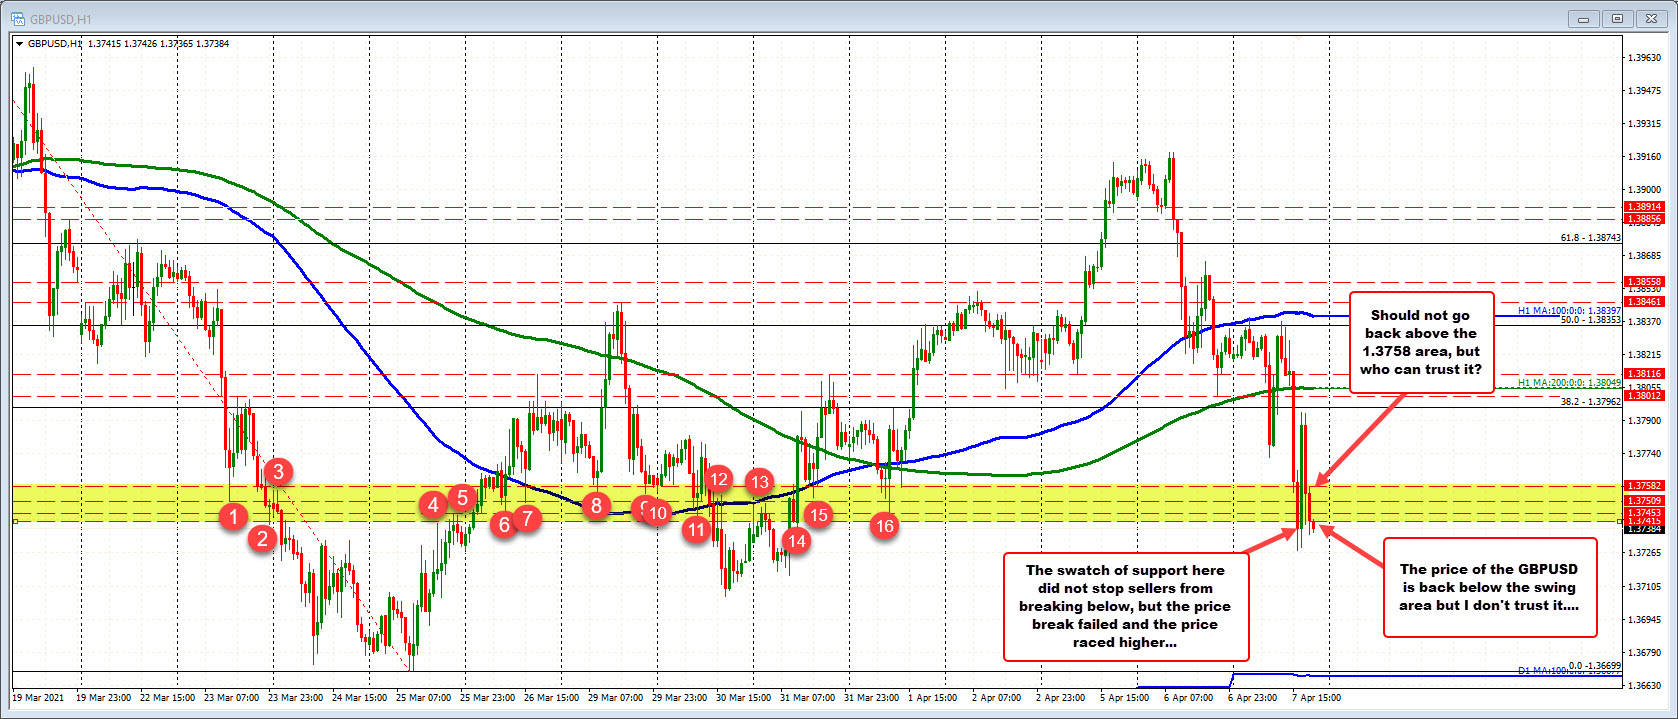 GBPUSD price action has lots of up and down volatility today